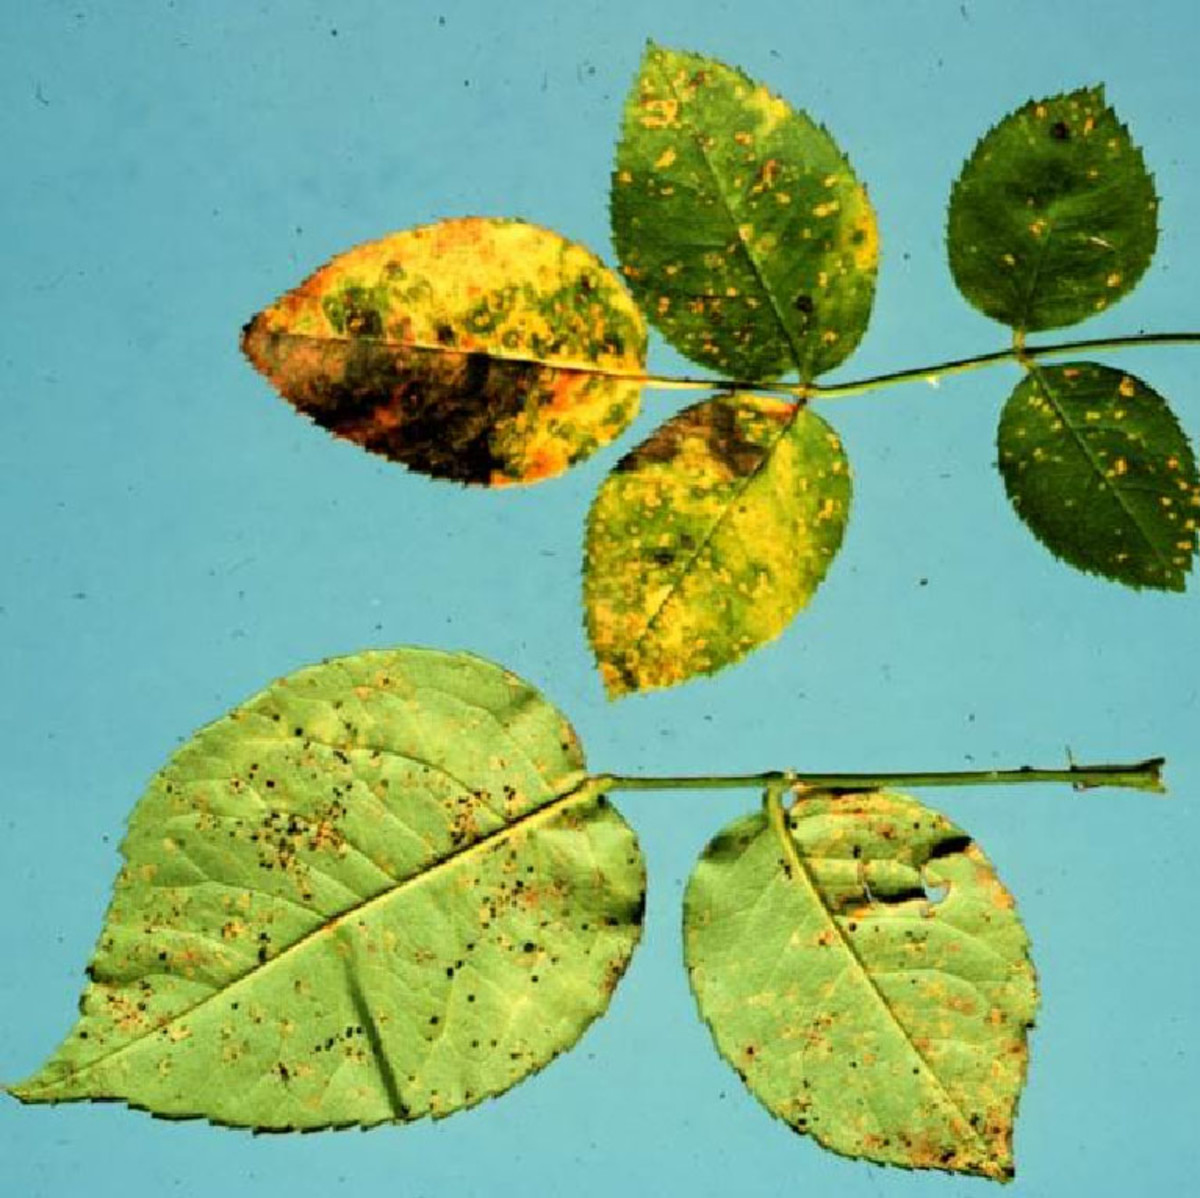 If the undersides of the leaves on your rose plant become mottled with yellow, you probably have a case of rust, a fungal disease that spreads about in rain drops.